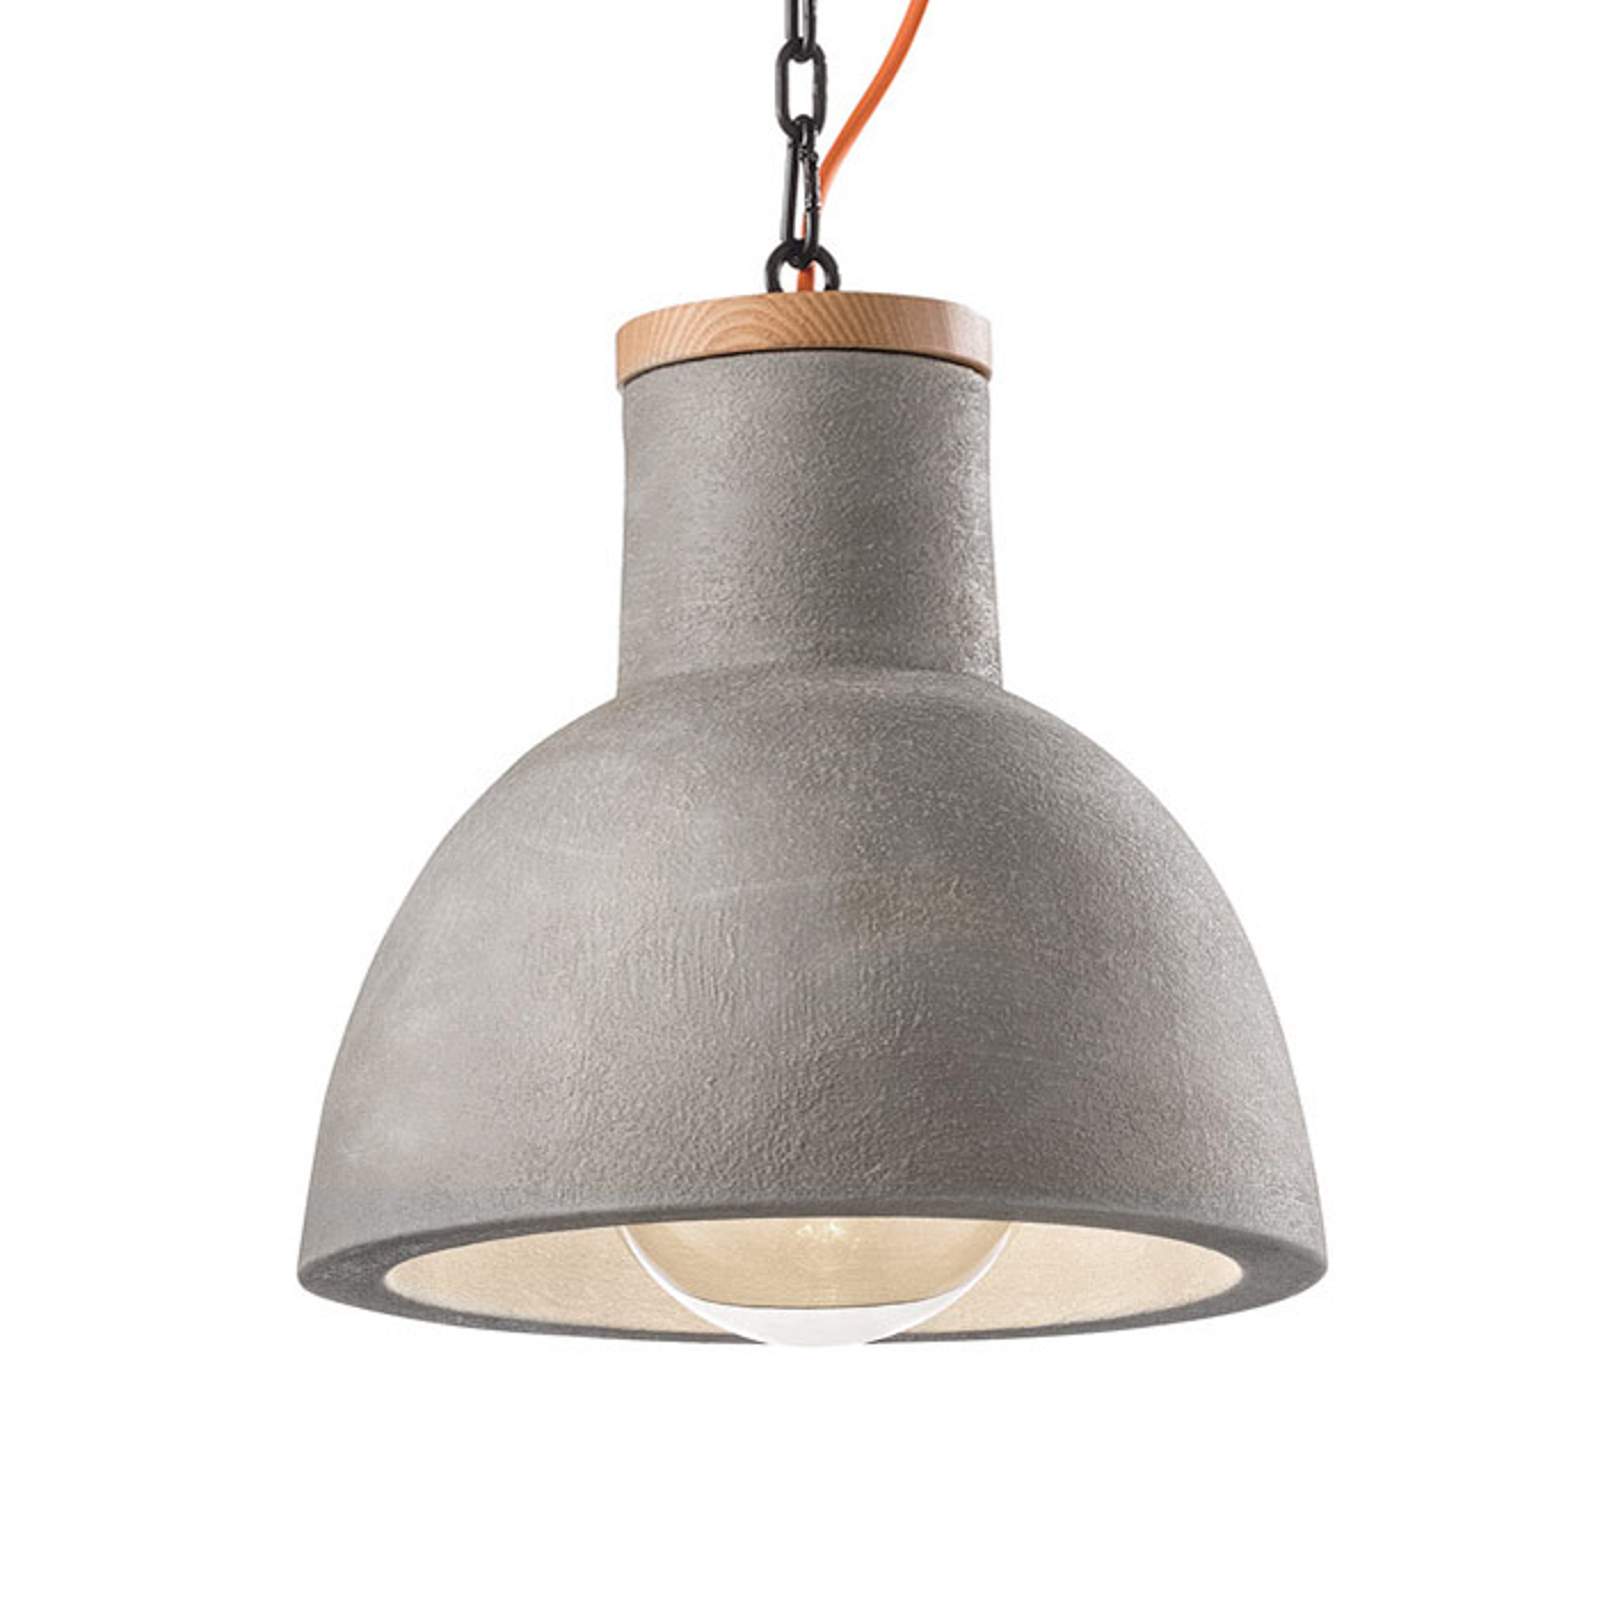 Suspension C1781 au style scandinave ciment